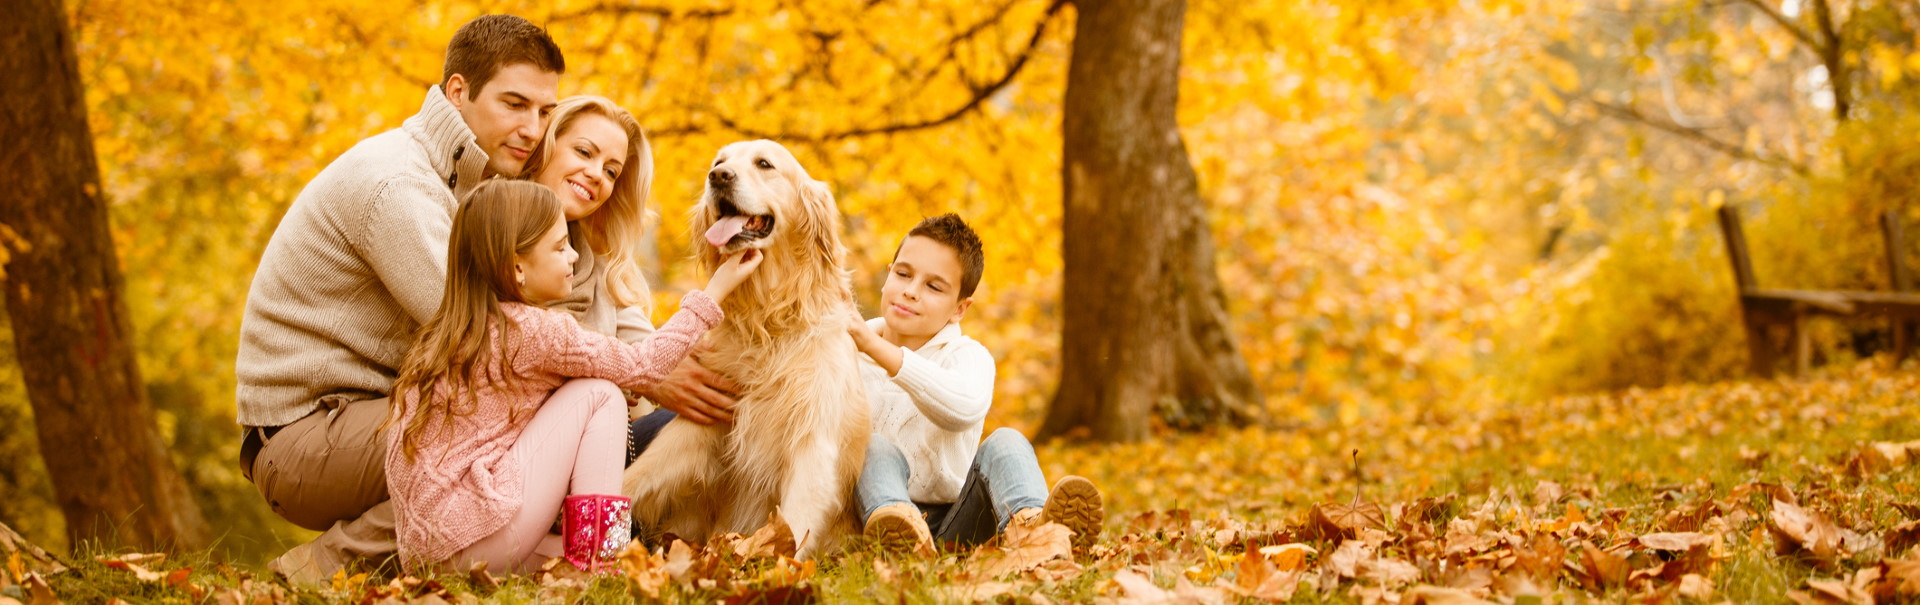 Family-and-dog-in-autumn-park-header.jpg